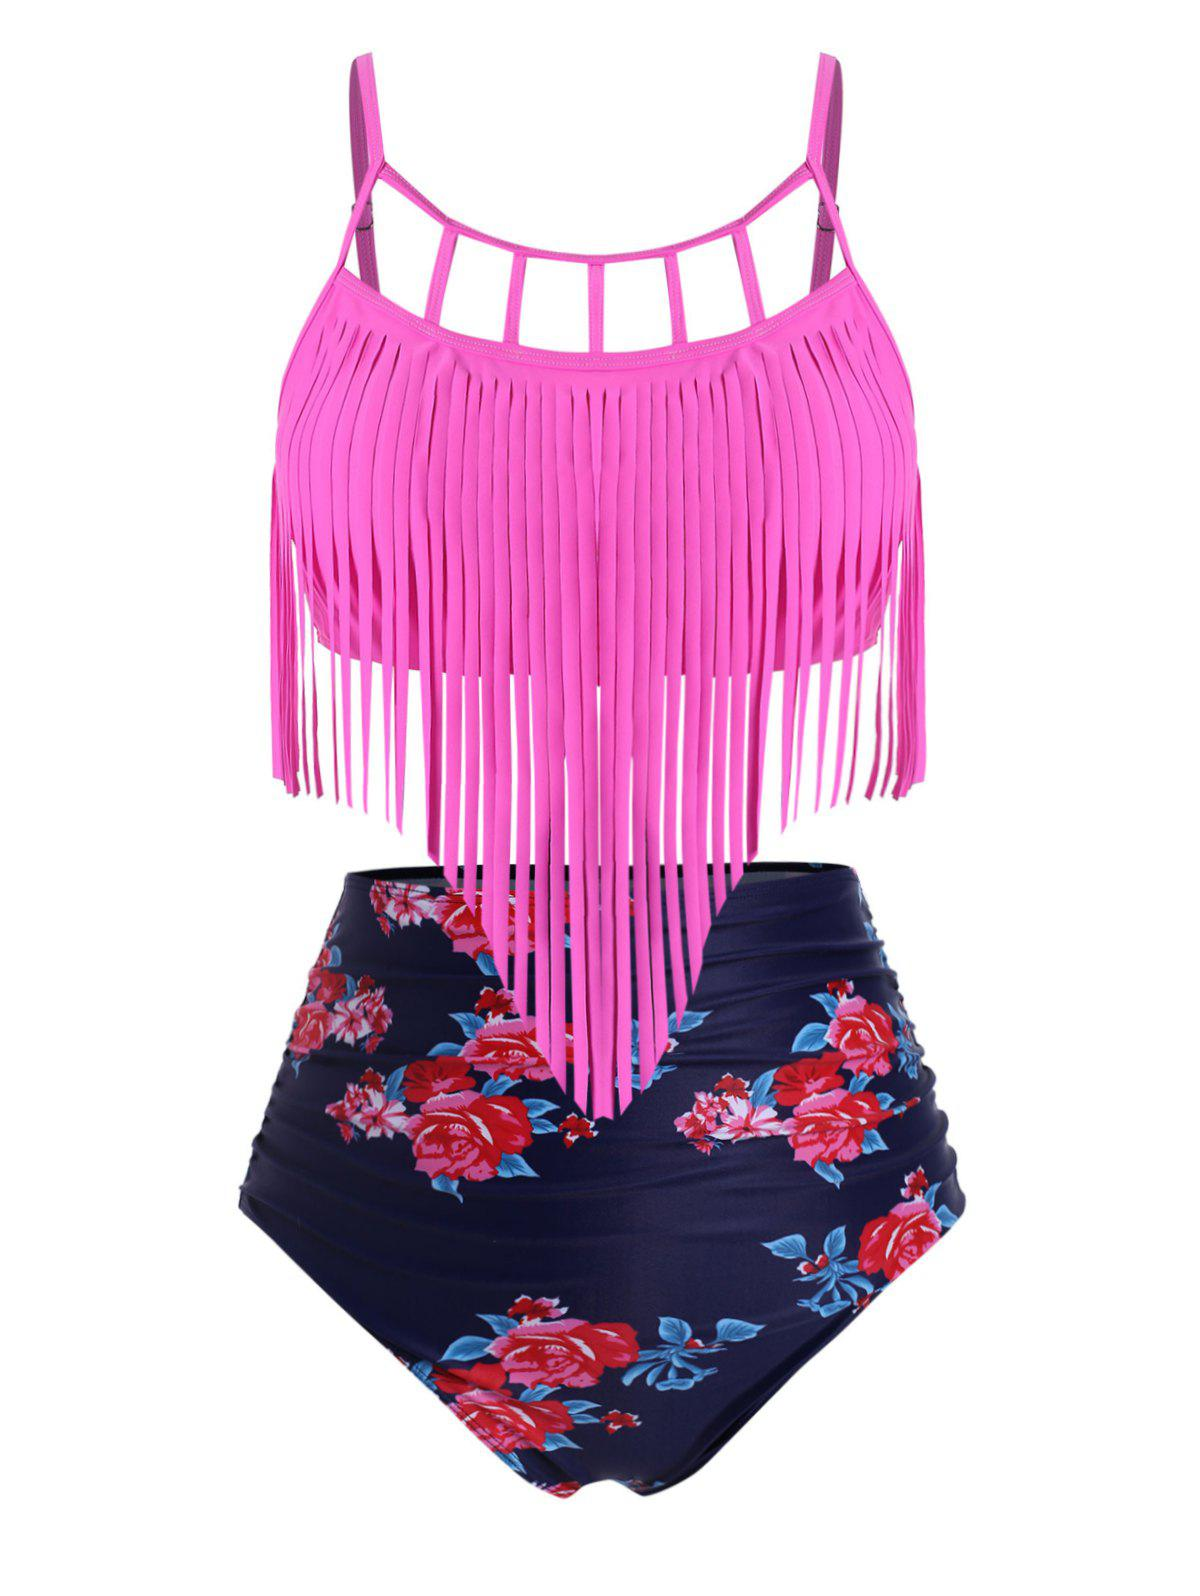 Fringed Floral Ruched High Waisted Plus Size Tankini Swimsuit - ROSE RED 1X